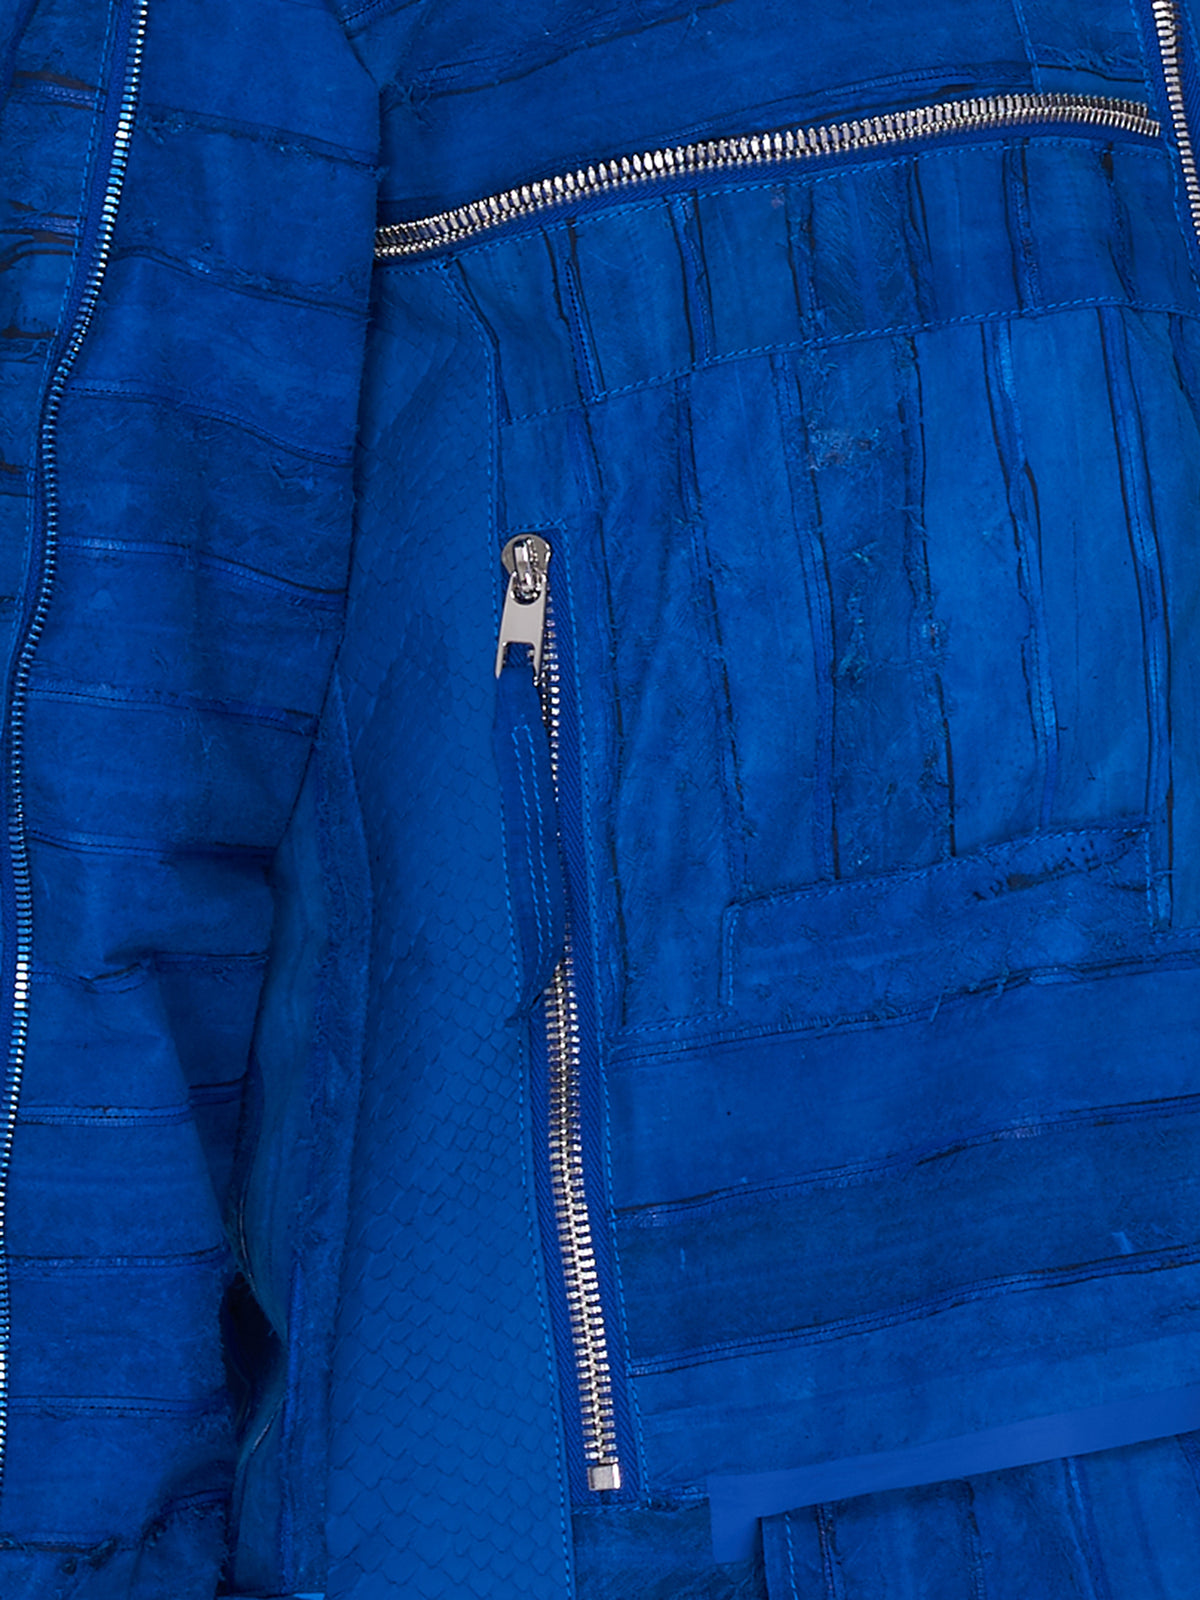 Electronic Blue Patchwork Leather Jacket (EELS-R-11-BLUE)